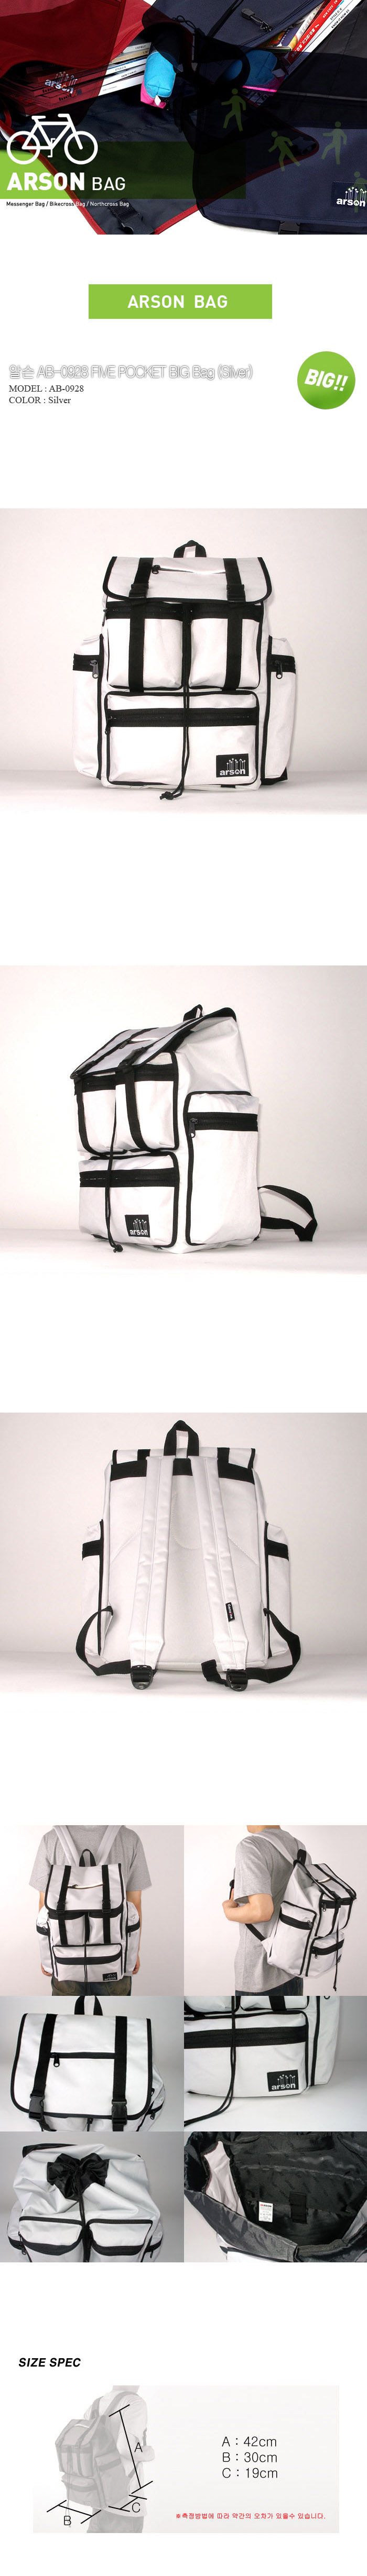 [ ARSON ] AB-0928 (Silver)/Backpack School Bag